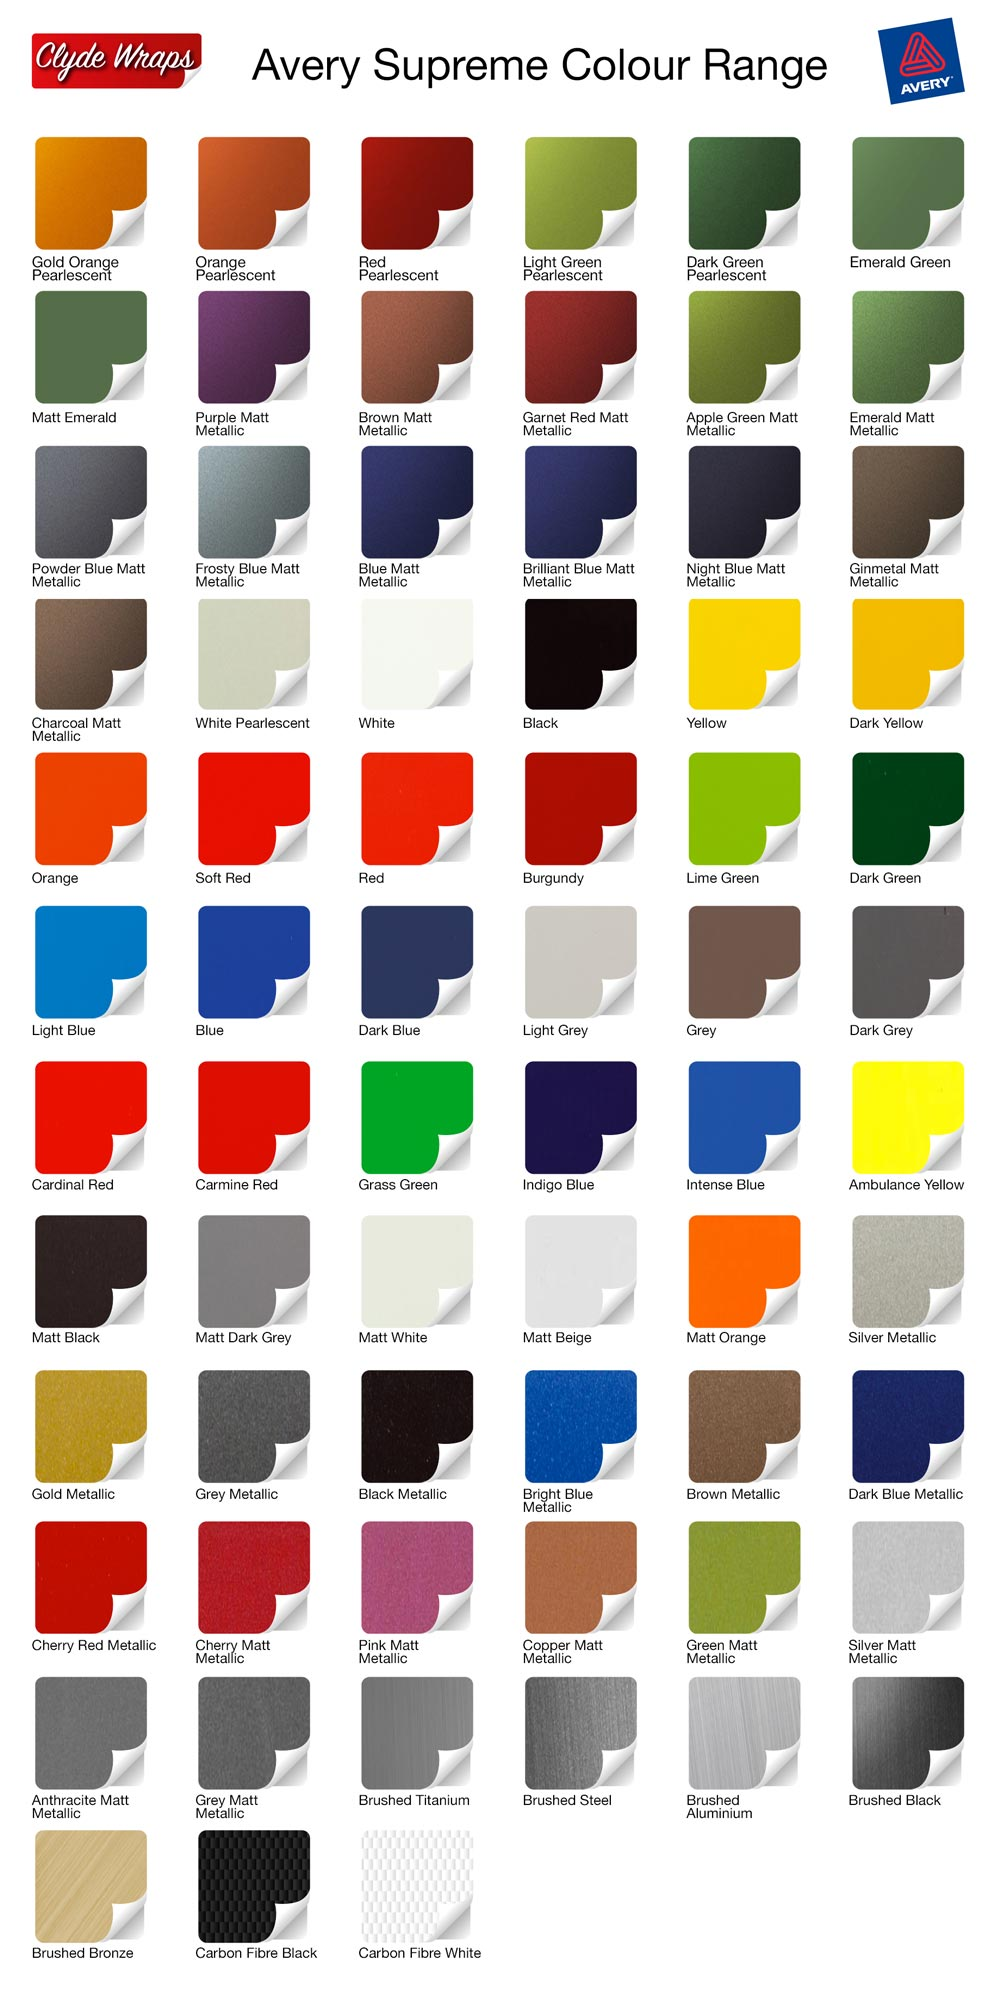 Colour Code Chart  Find Paint Codes for Cars  Car Colour